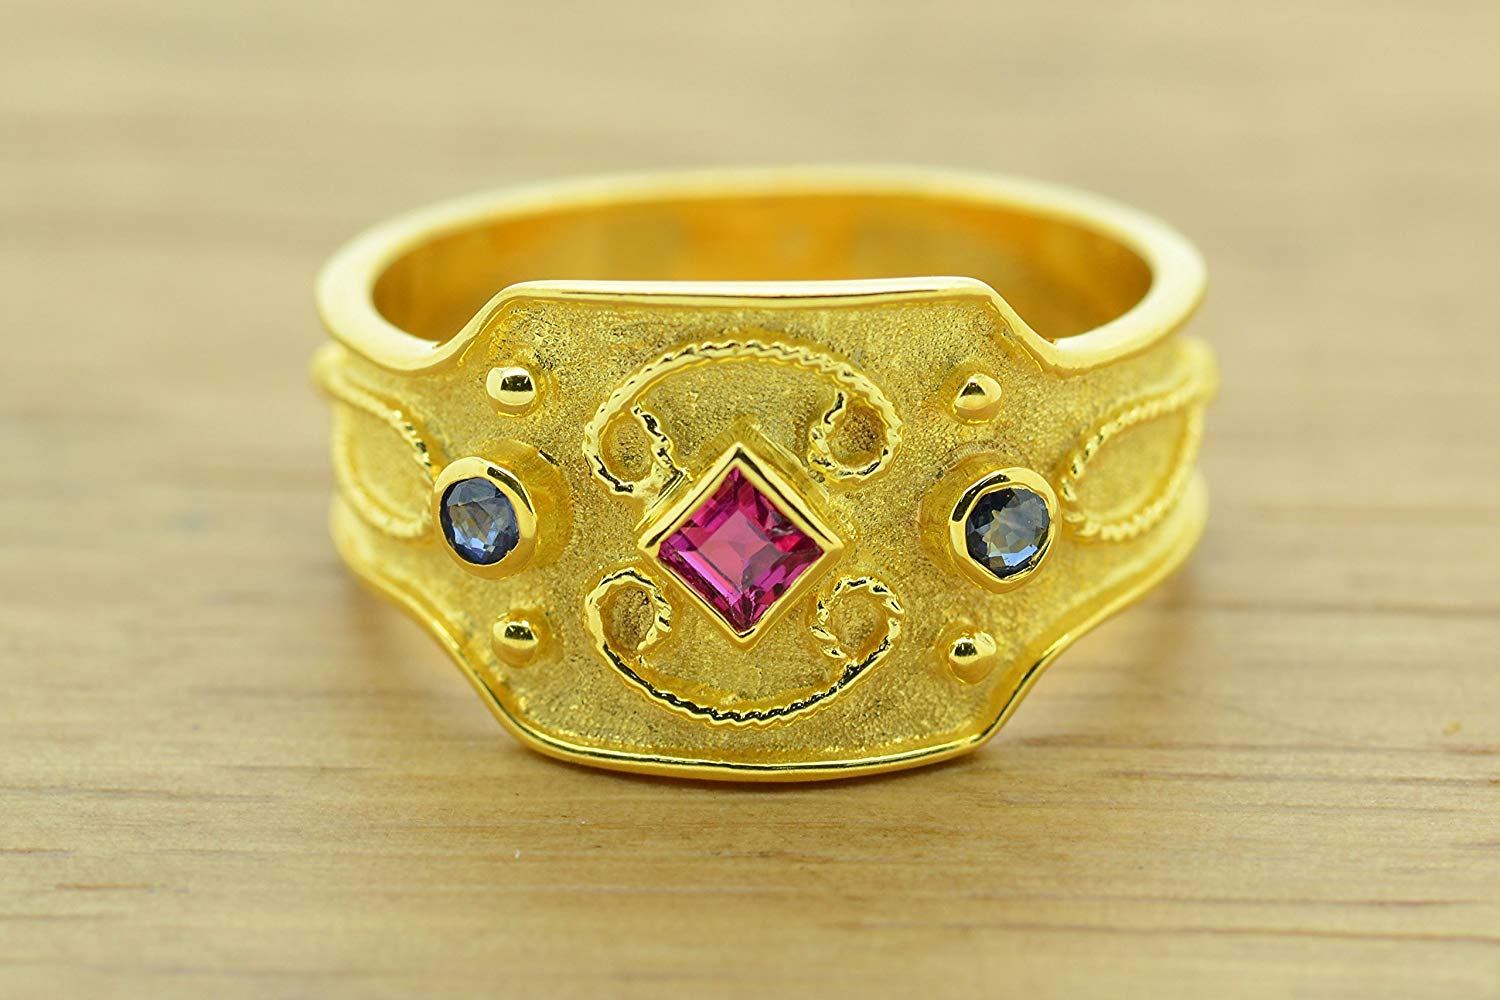 Princess Cut Ruby Oval Sapphire Ring Byzantine Style 925 Sterling Silver 22K Gold Plated Greek Handmade Art Ring, Byzantine Rubies Sapphires CZ Ring, 22K Gold Plated Ring, CZ Band Ring, Sterling Silver Ring, Etruscan Style Ring, Byzantine Ring, Greek Jewelry, Luxury Ring, Medieval Ring, Elegant